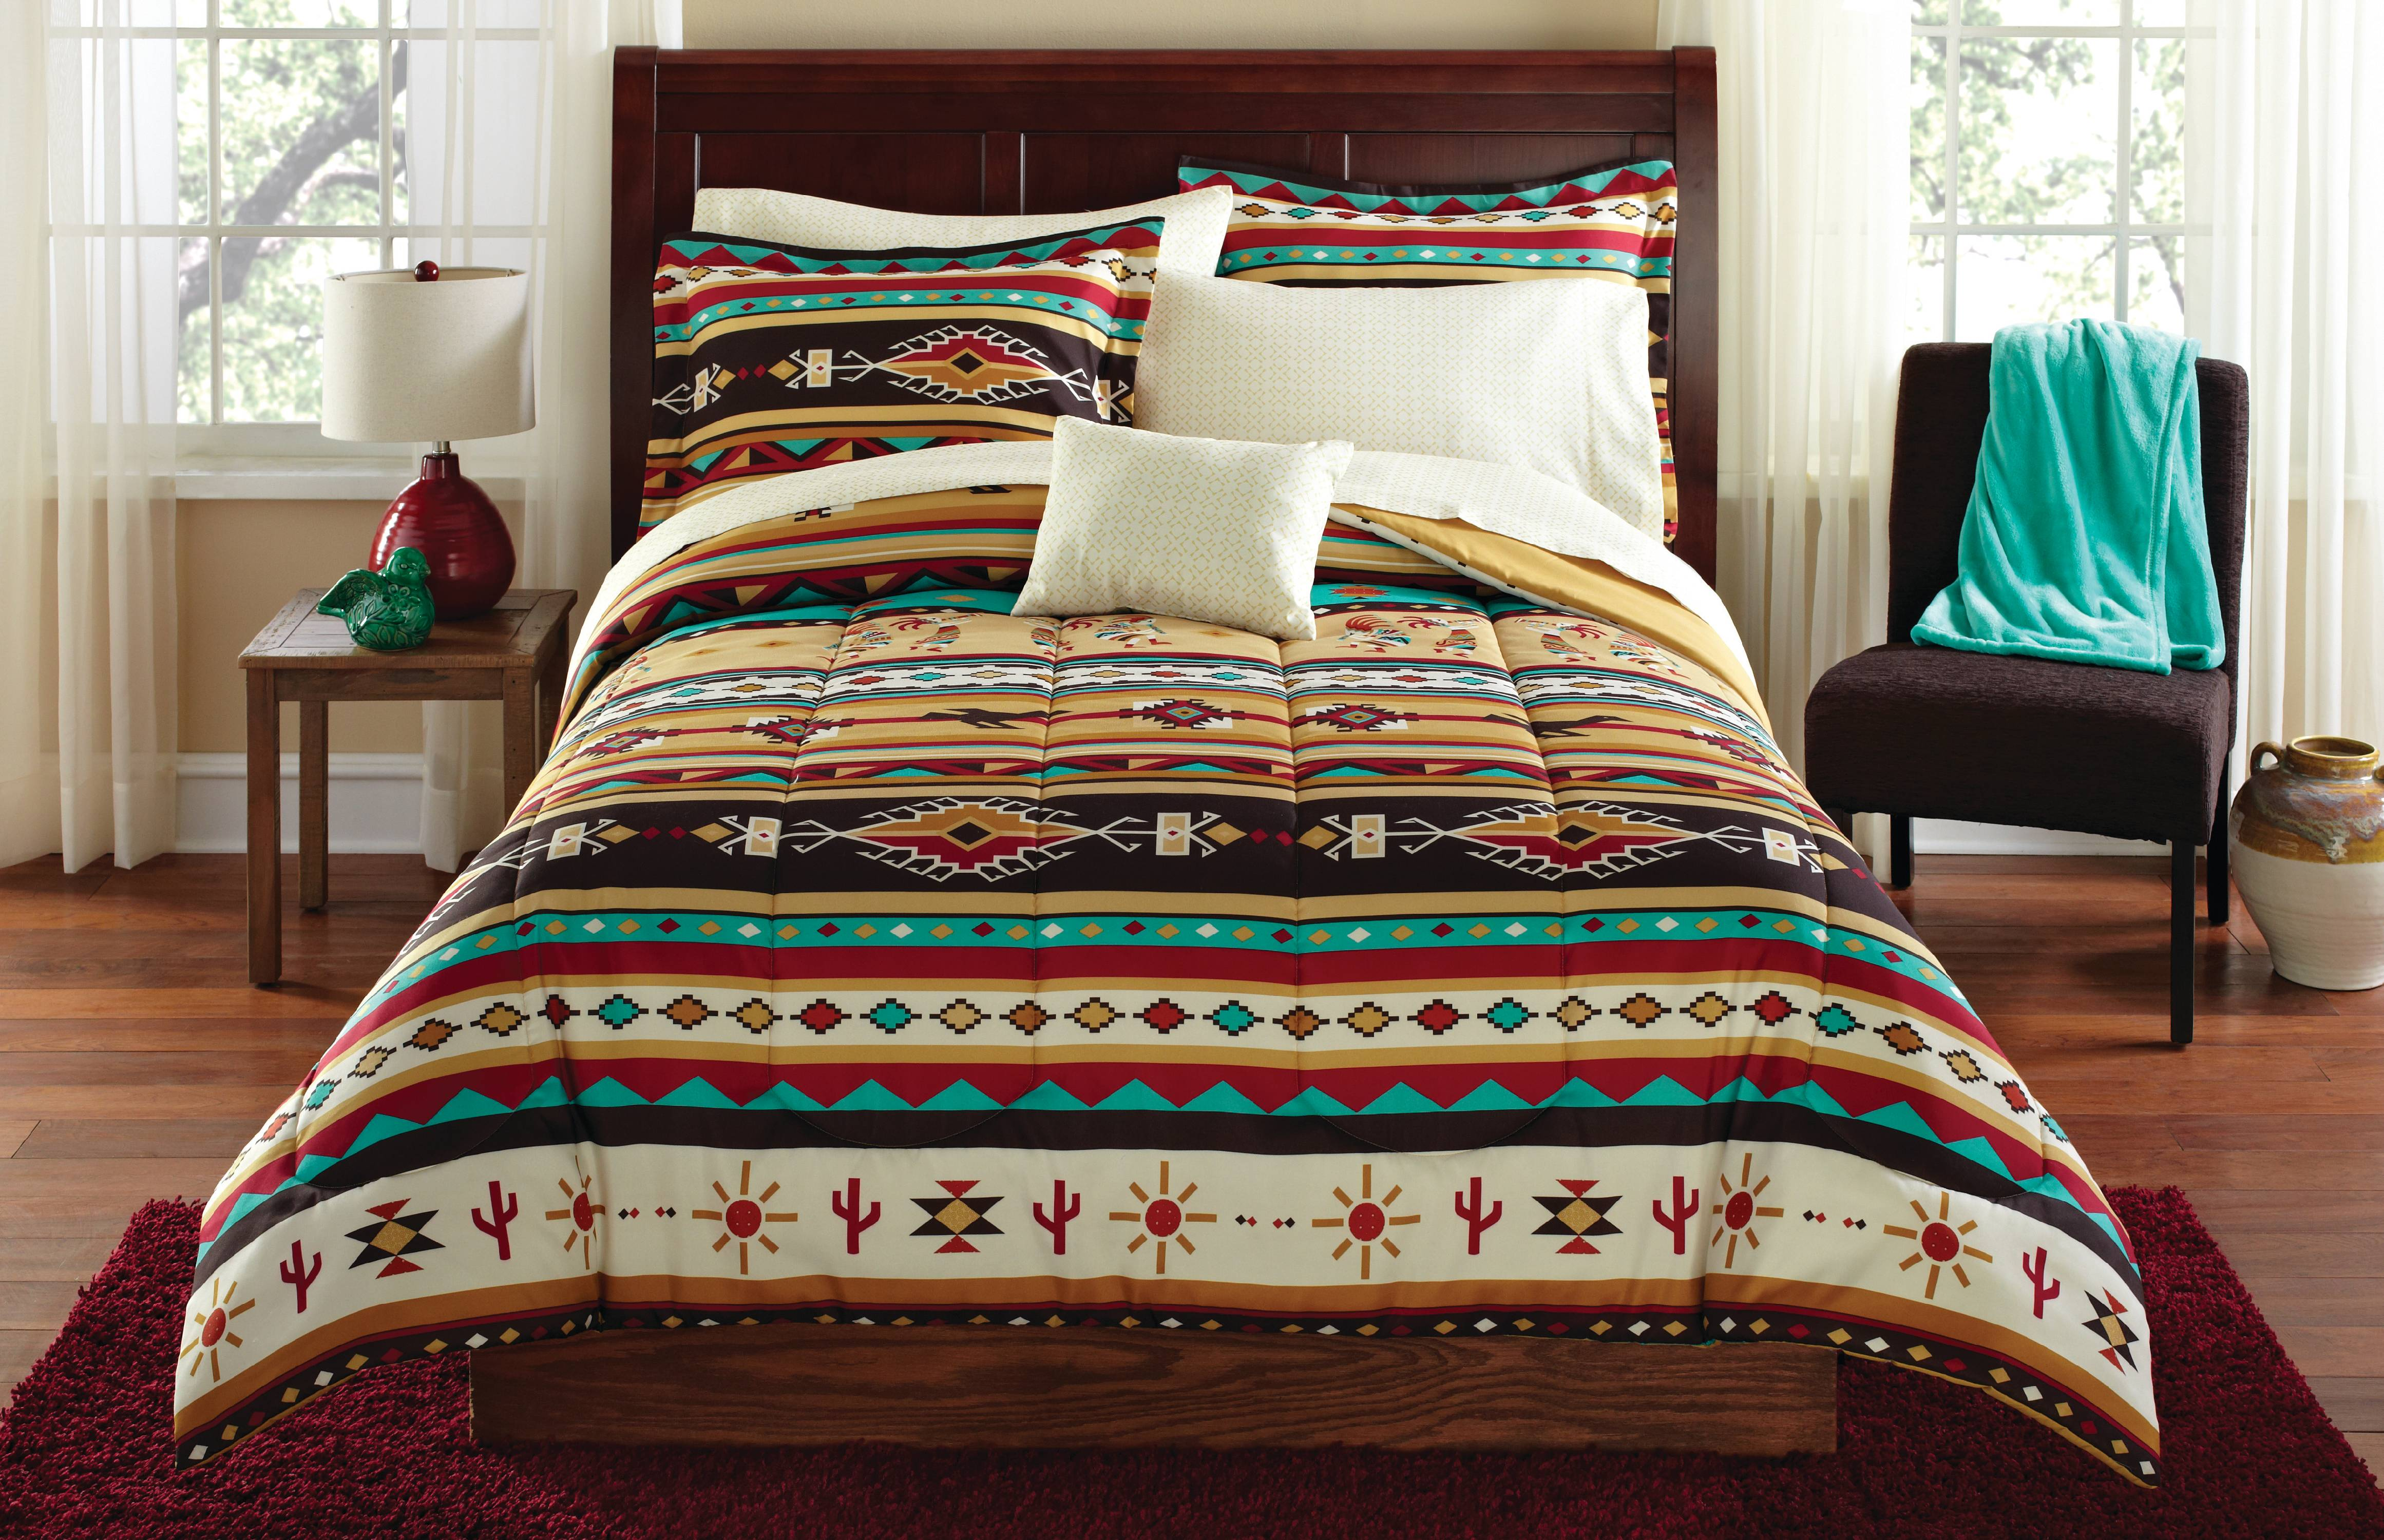 Mainstays Kokopelli Bed in a Bag Bedding Set at Walmart for $19.99 Online